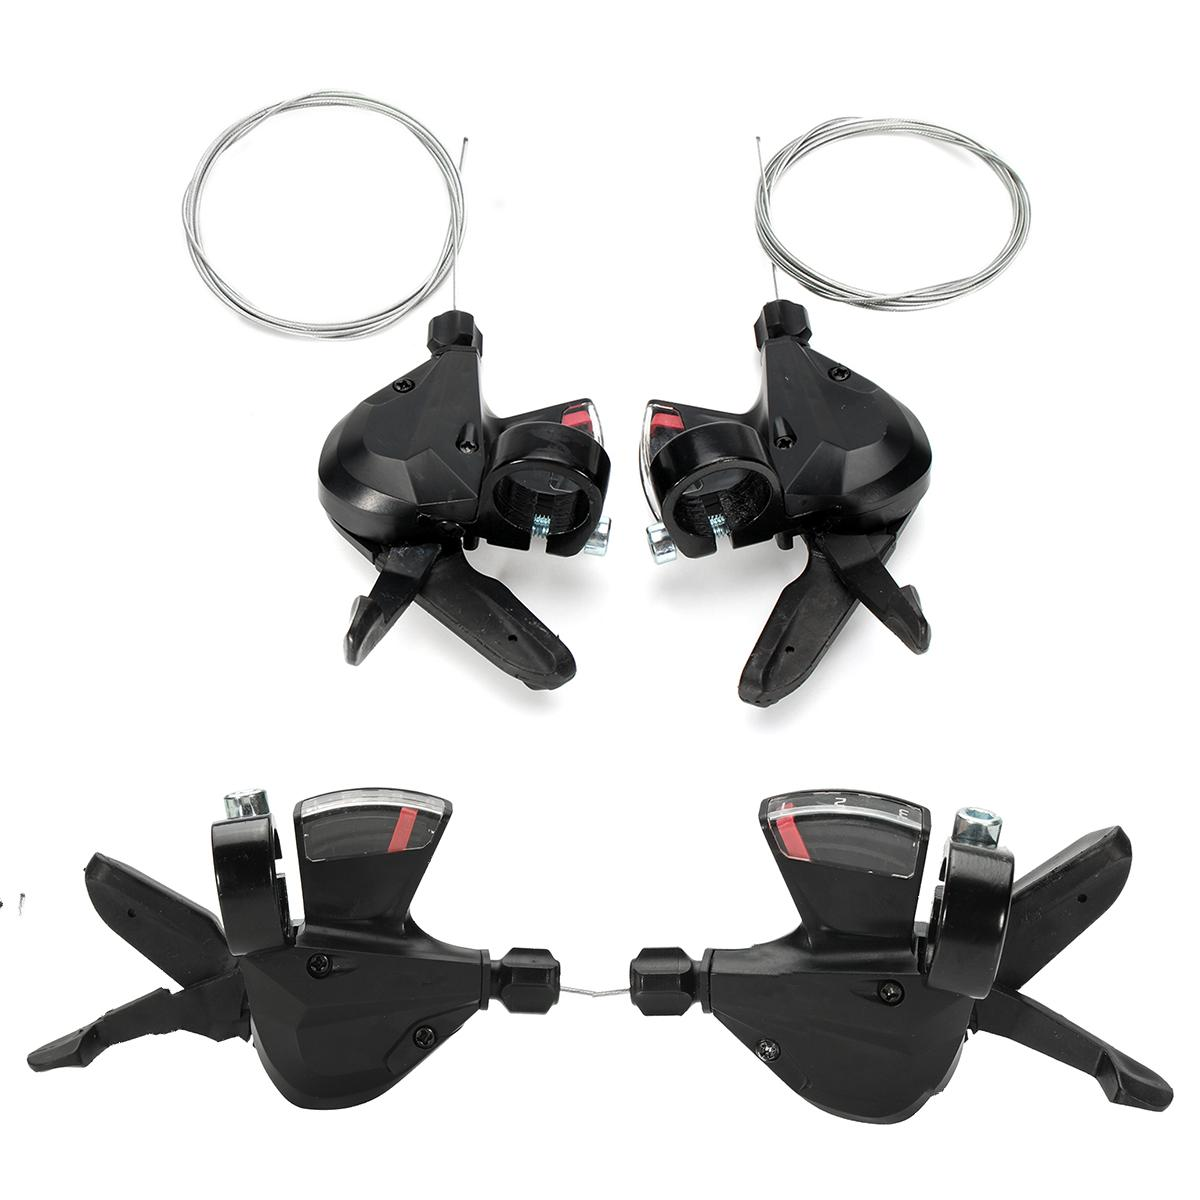 1 Pair 3x8 Speed MTB Bike Bicycle Left Right Shifter for Shimano Acera SL M310|Shifters| |  - title=